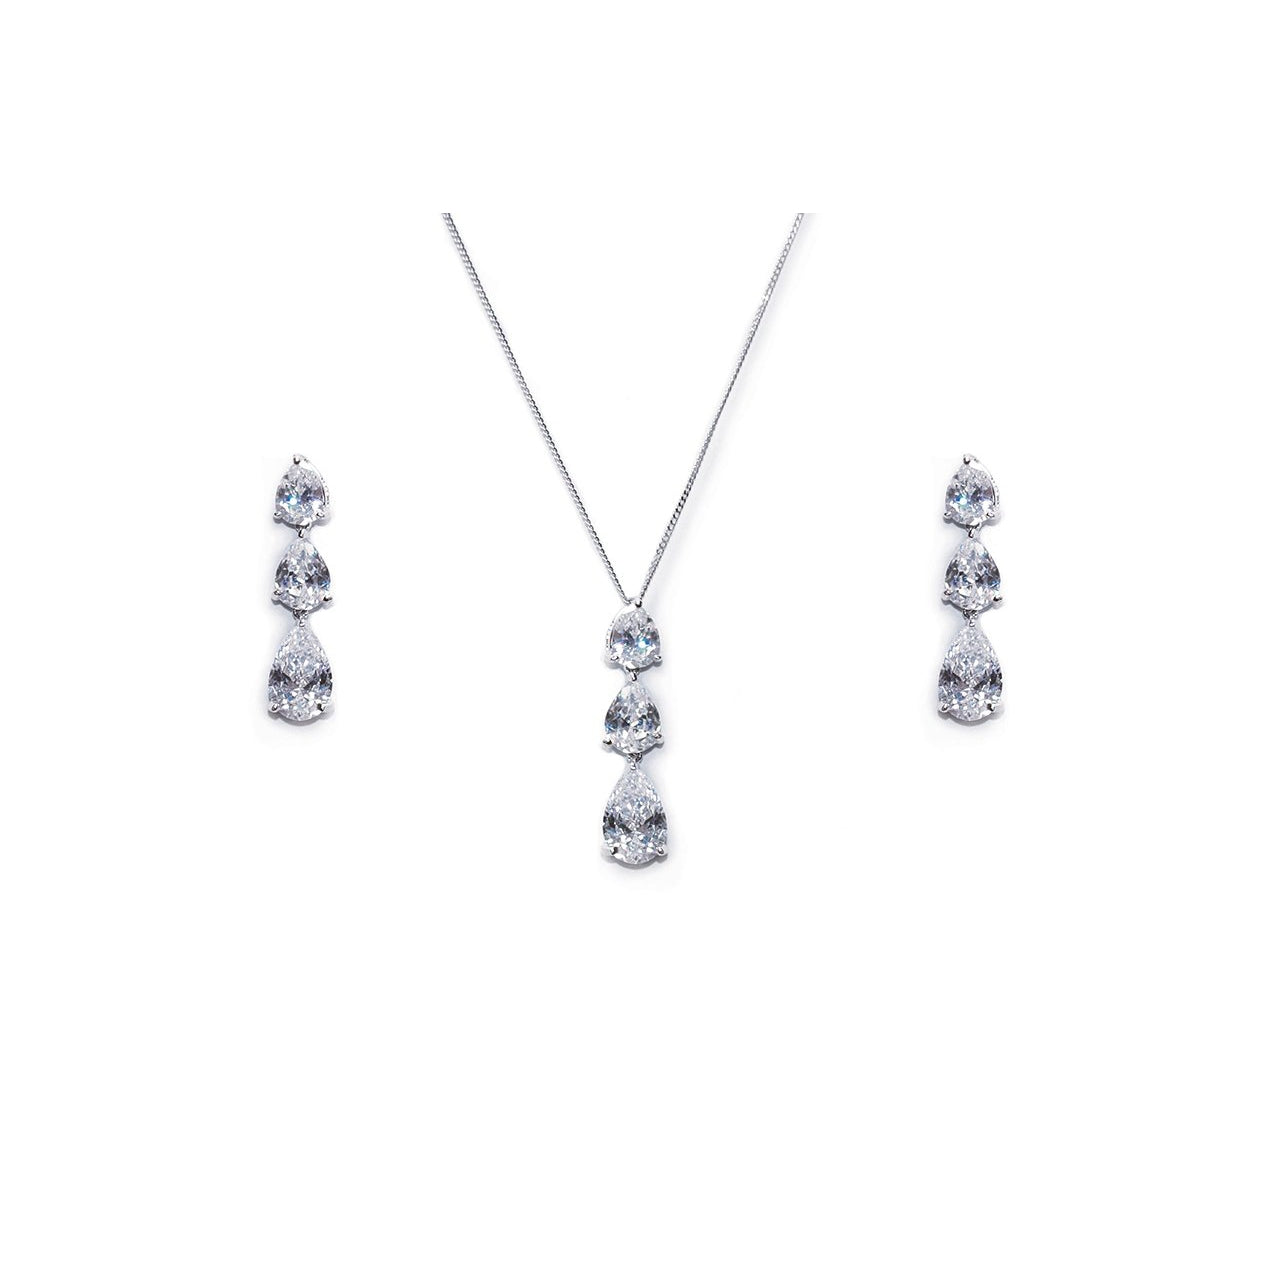 Parure Collier - Boucles d'oreilles<br>Purity - MP Paris